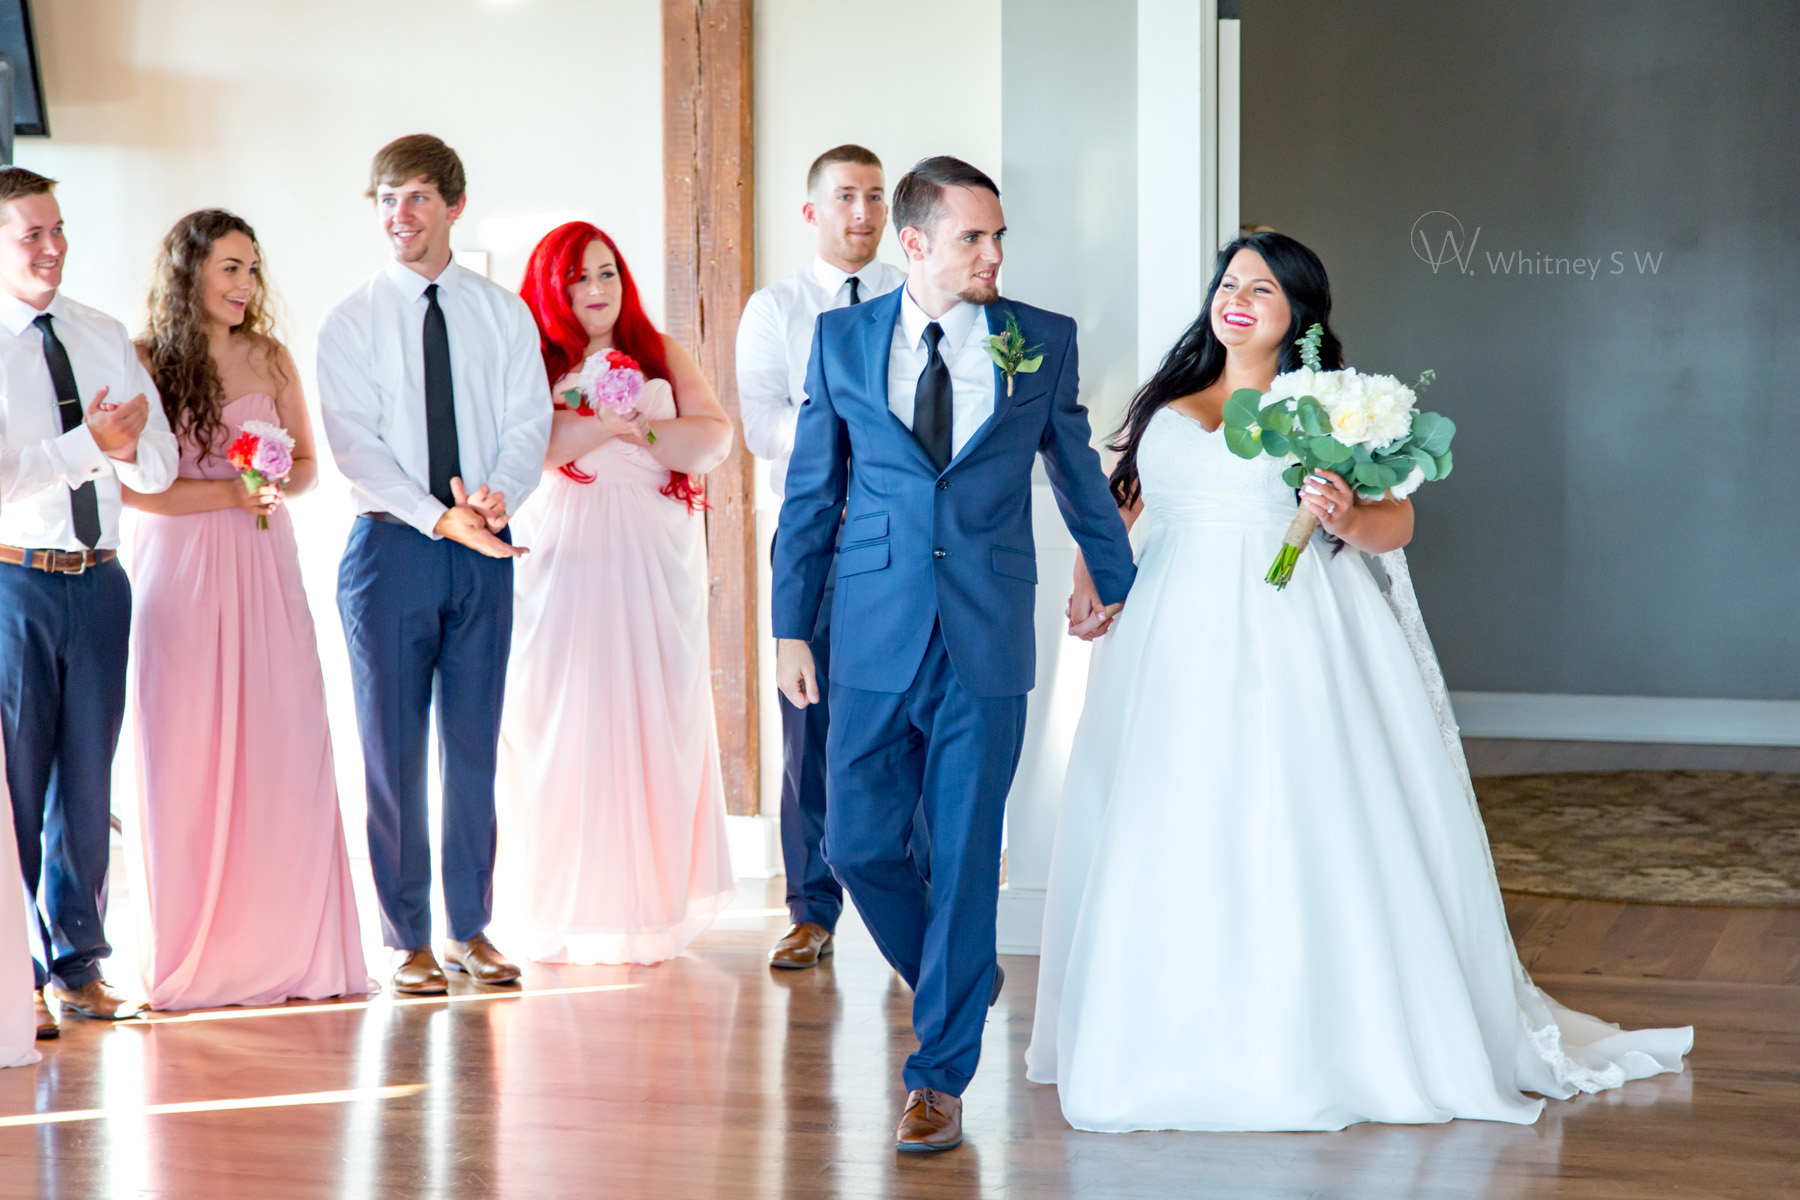 SimpsonFalinWedding_Photography by Whitney S Williams (261).jpg